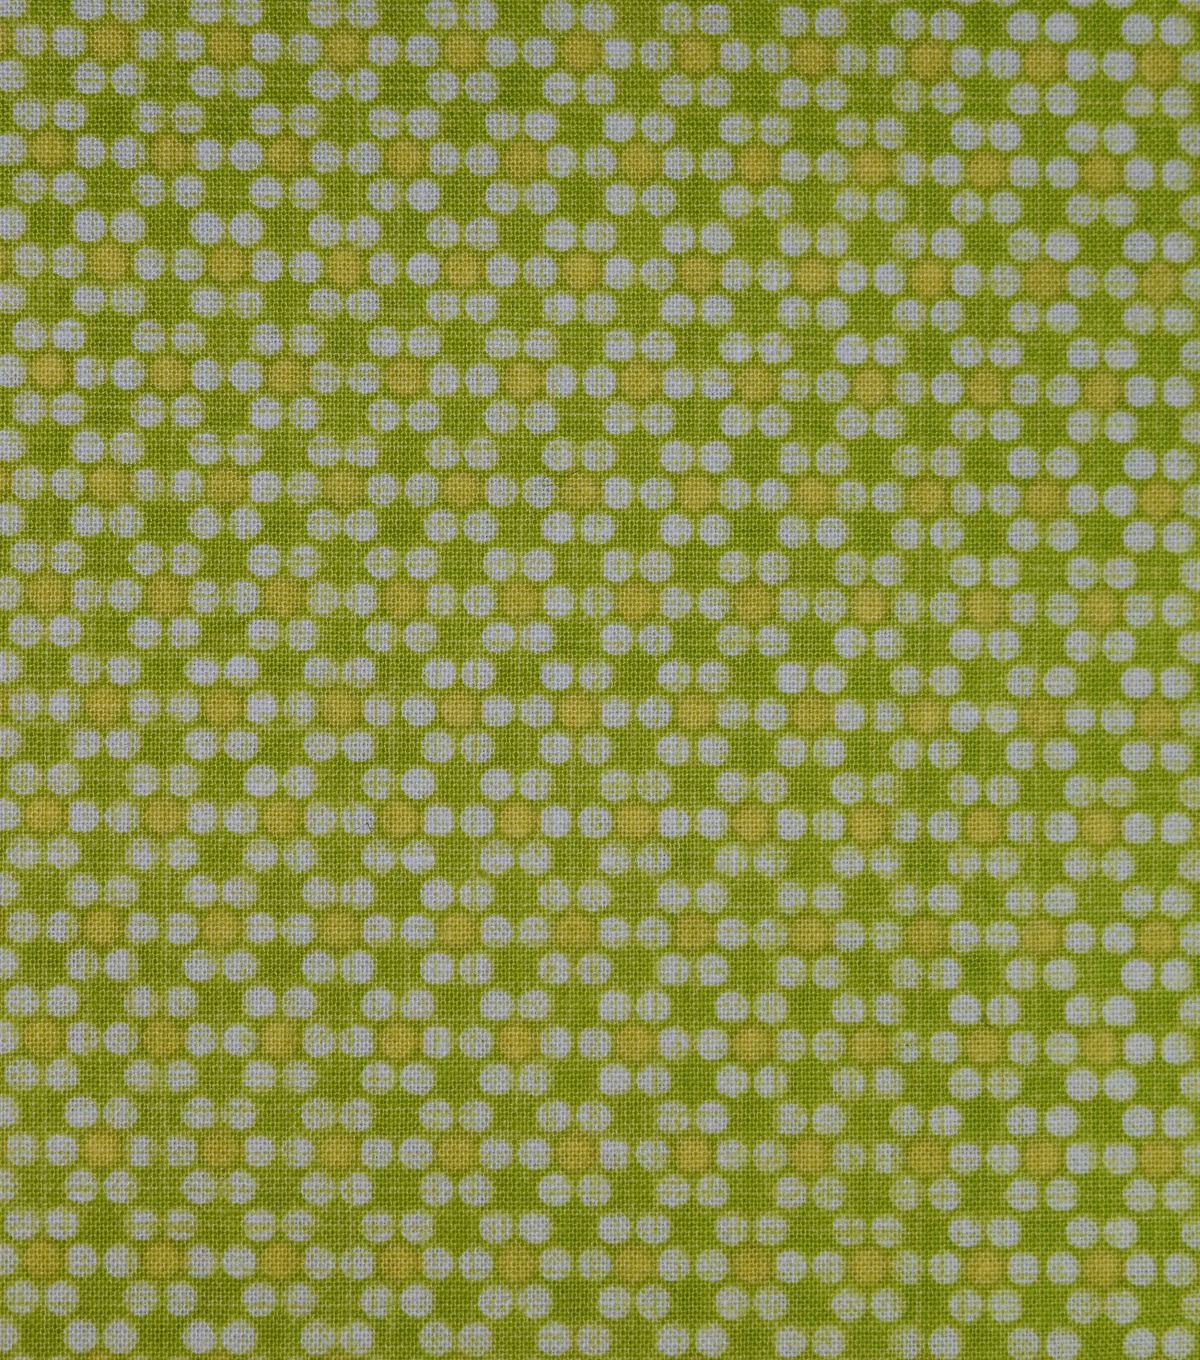 Premium Quilt Cotton Fabric-Remi Dot Flowers